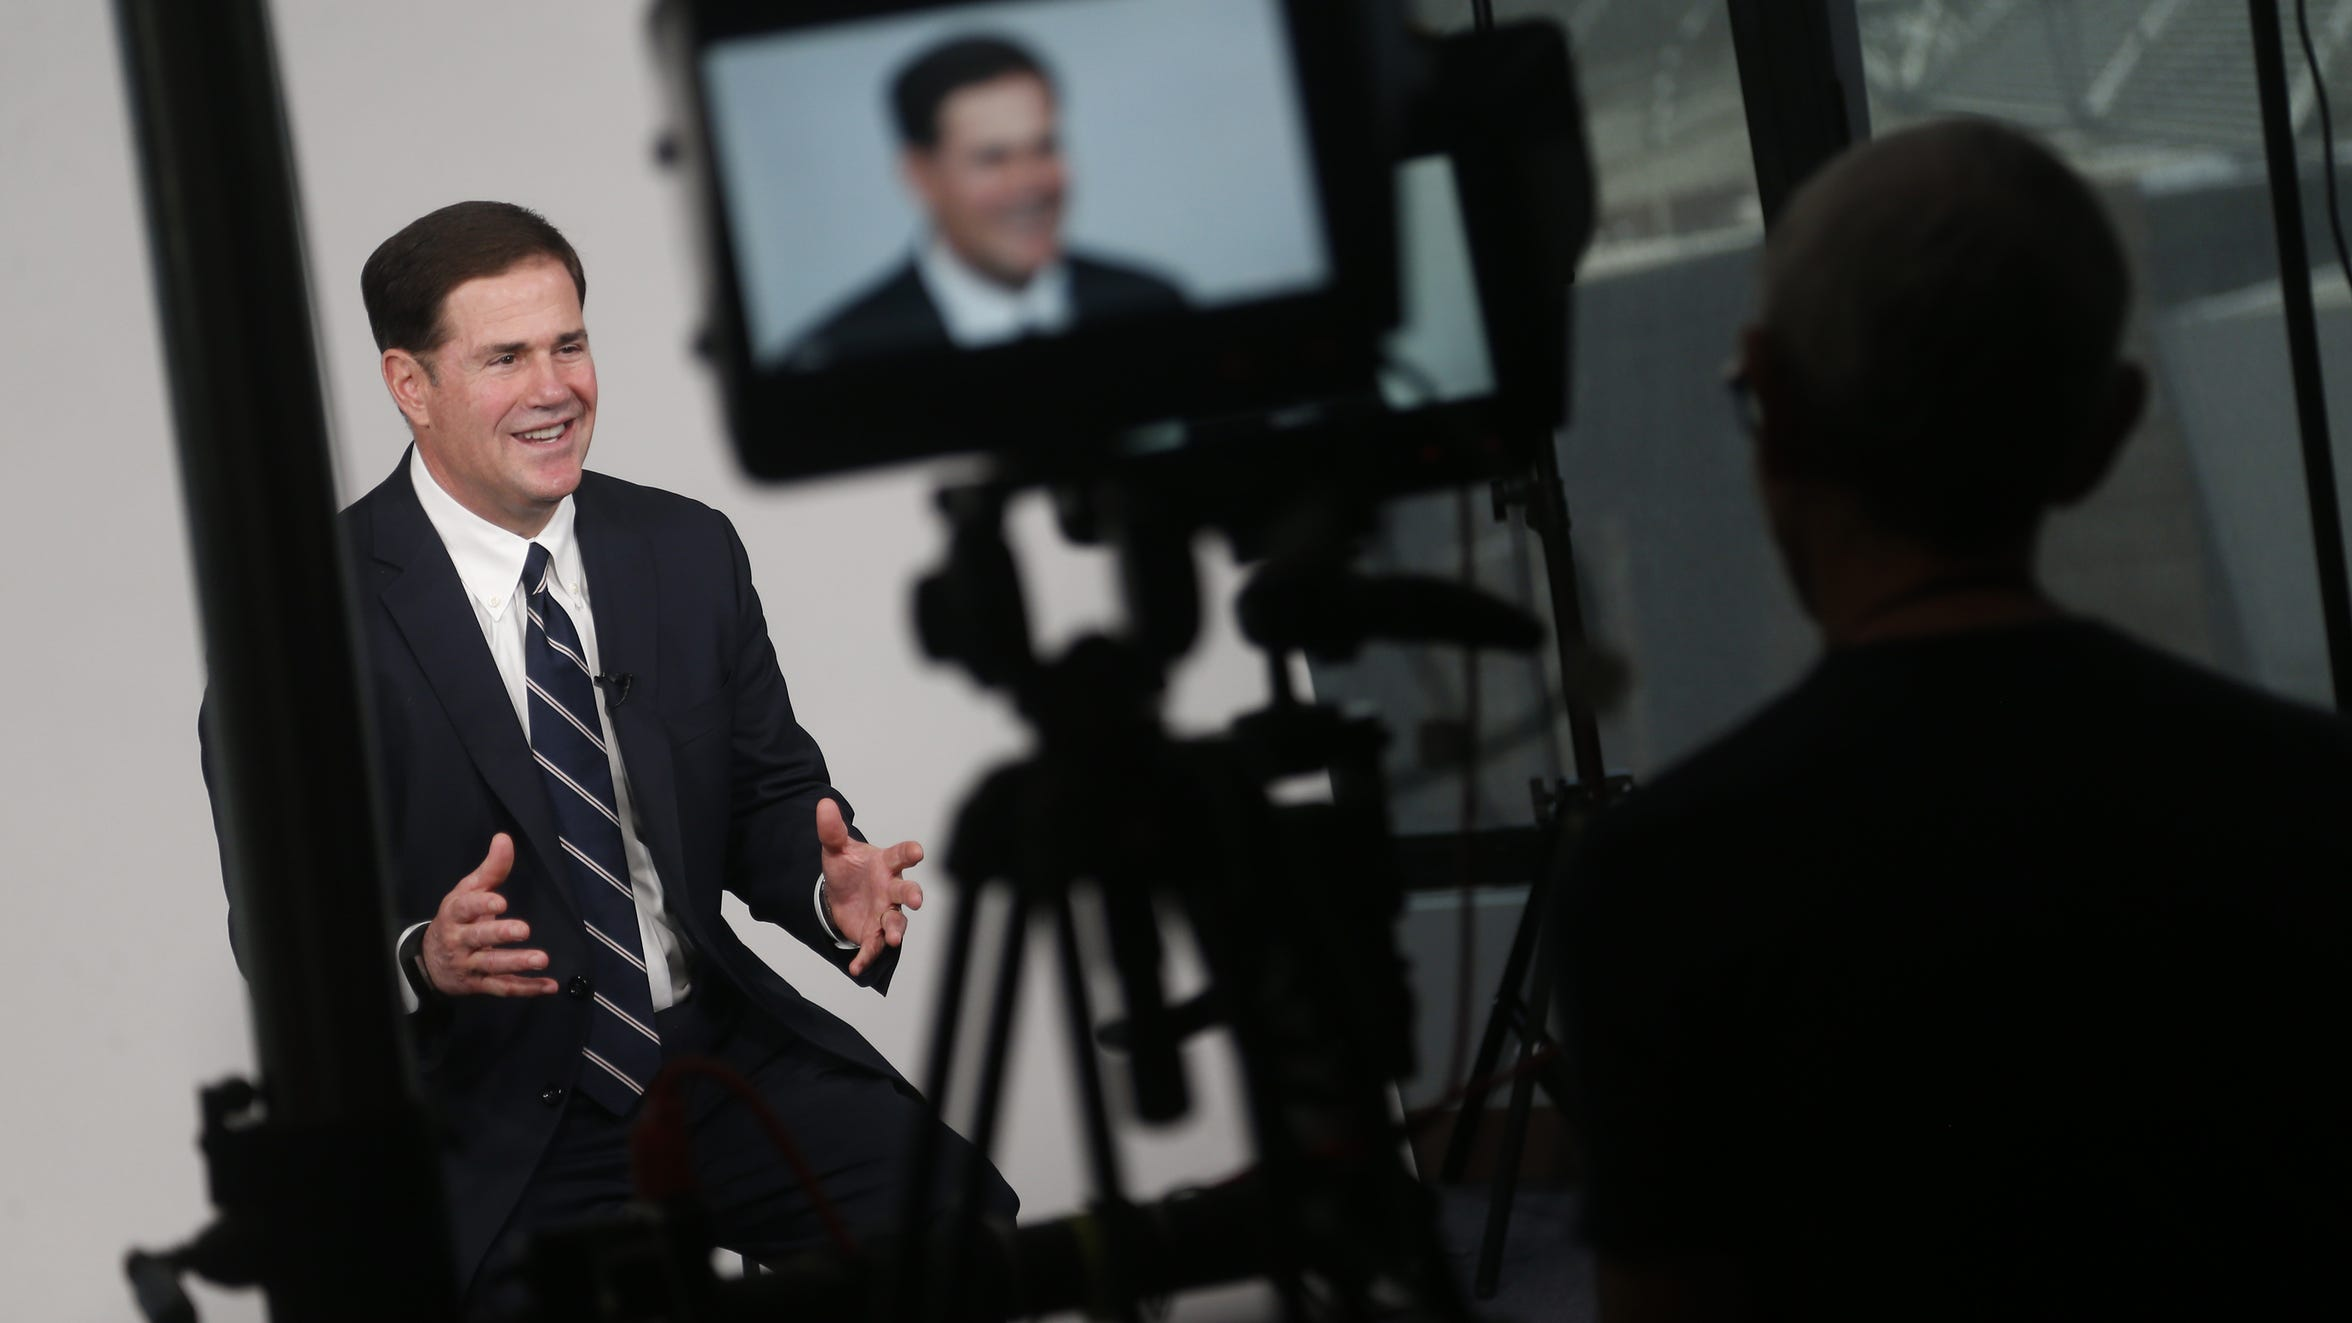 Gov. Doug Ducey sits down for an interview at The Arizona Republic in Phoenix on July 27, 2018.